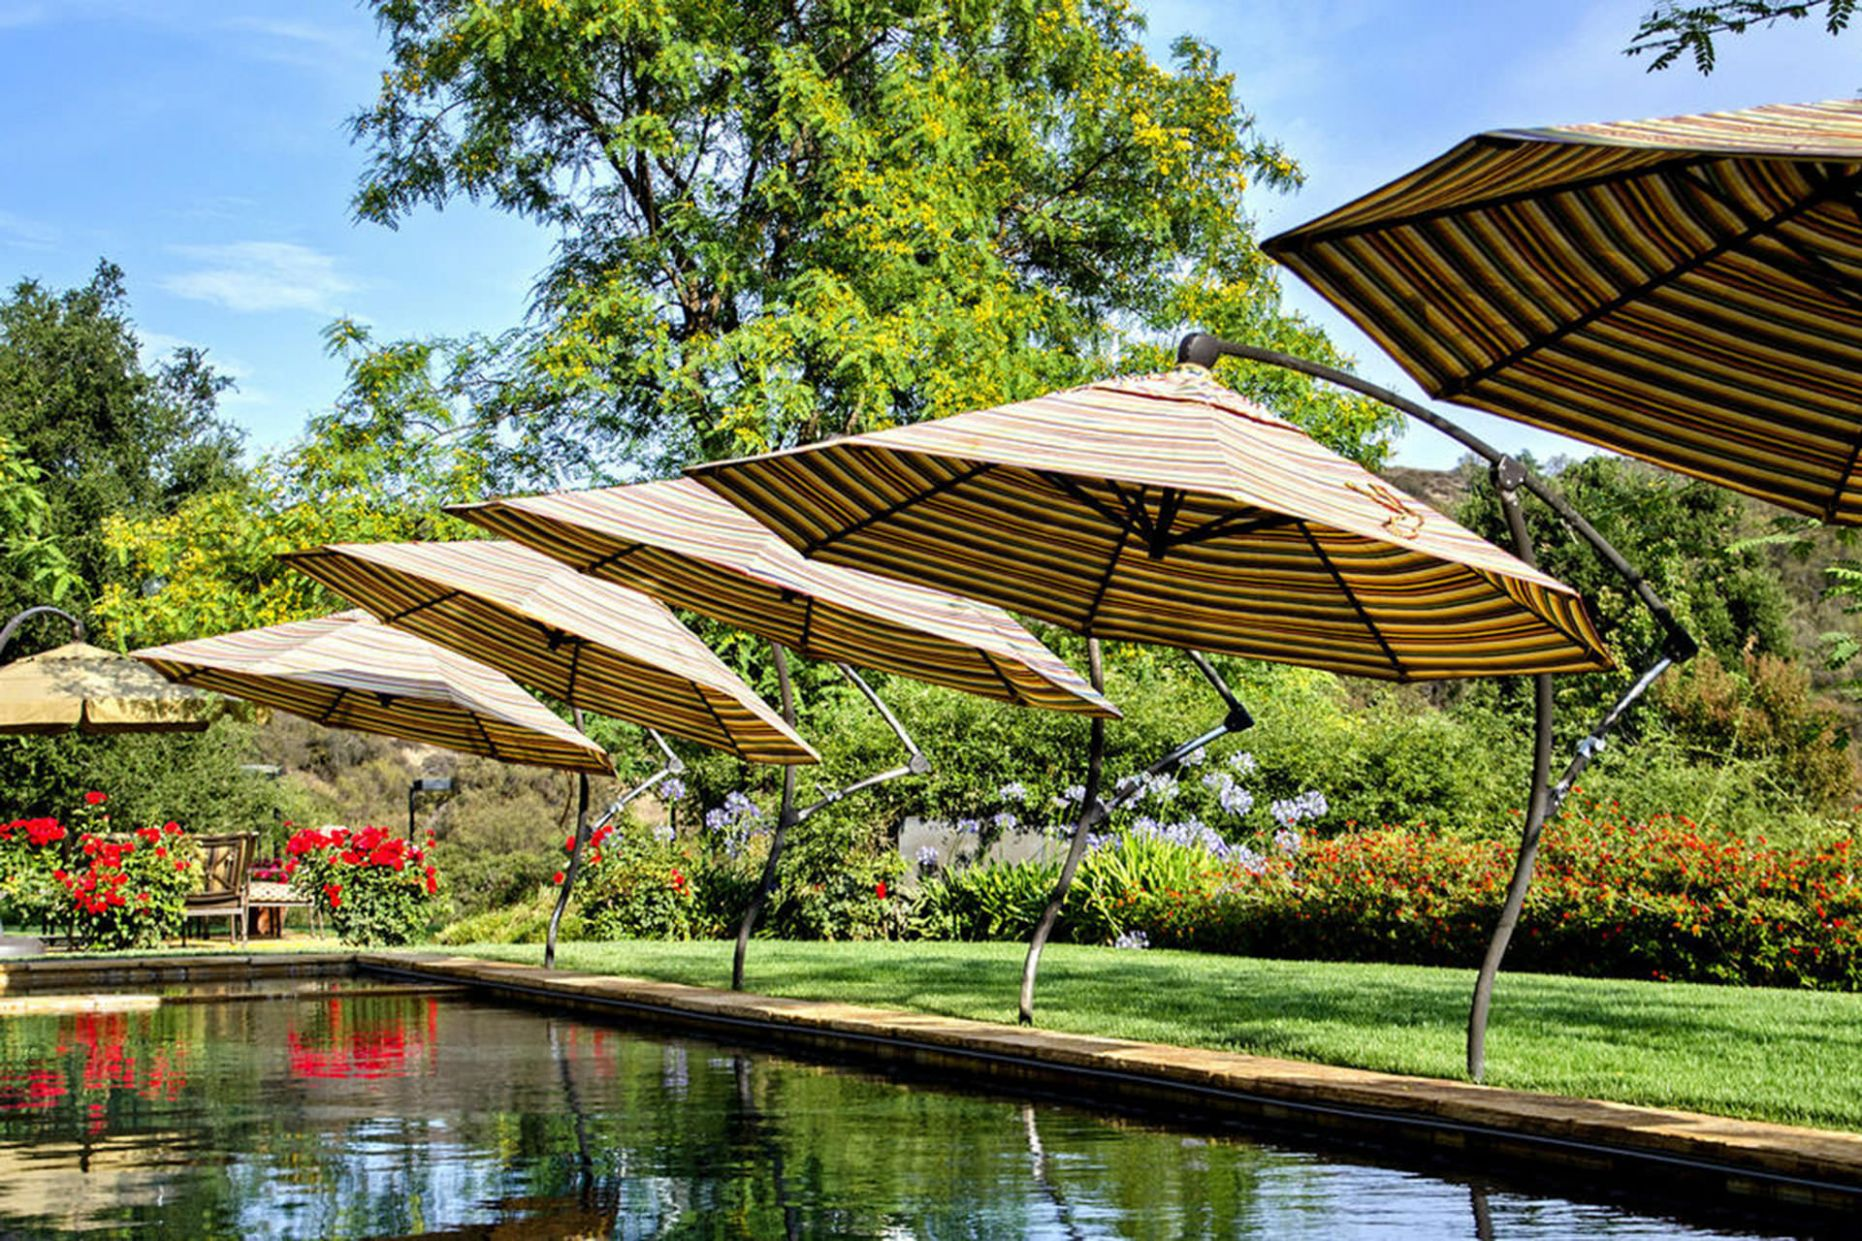 Pool Shade Ideas: 9 Ways to Cover Your Swimming Pool - pool umbrella ideas